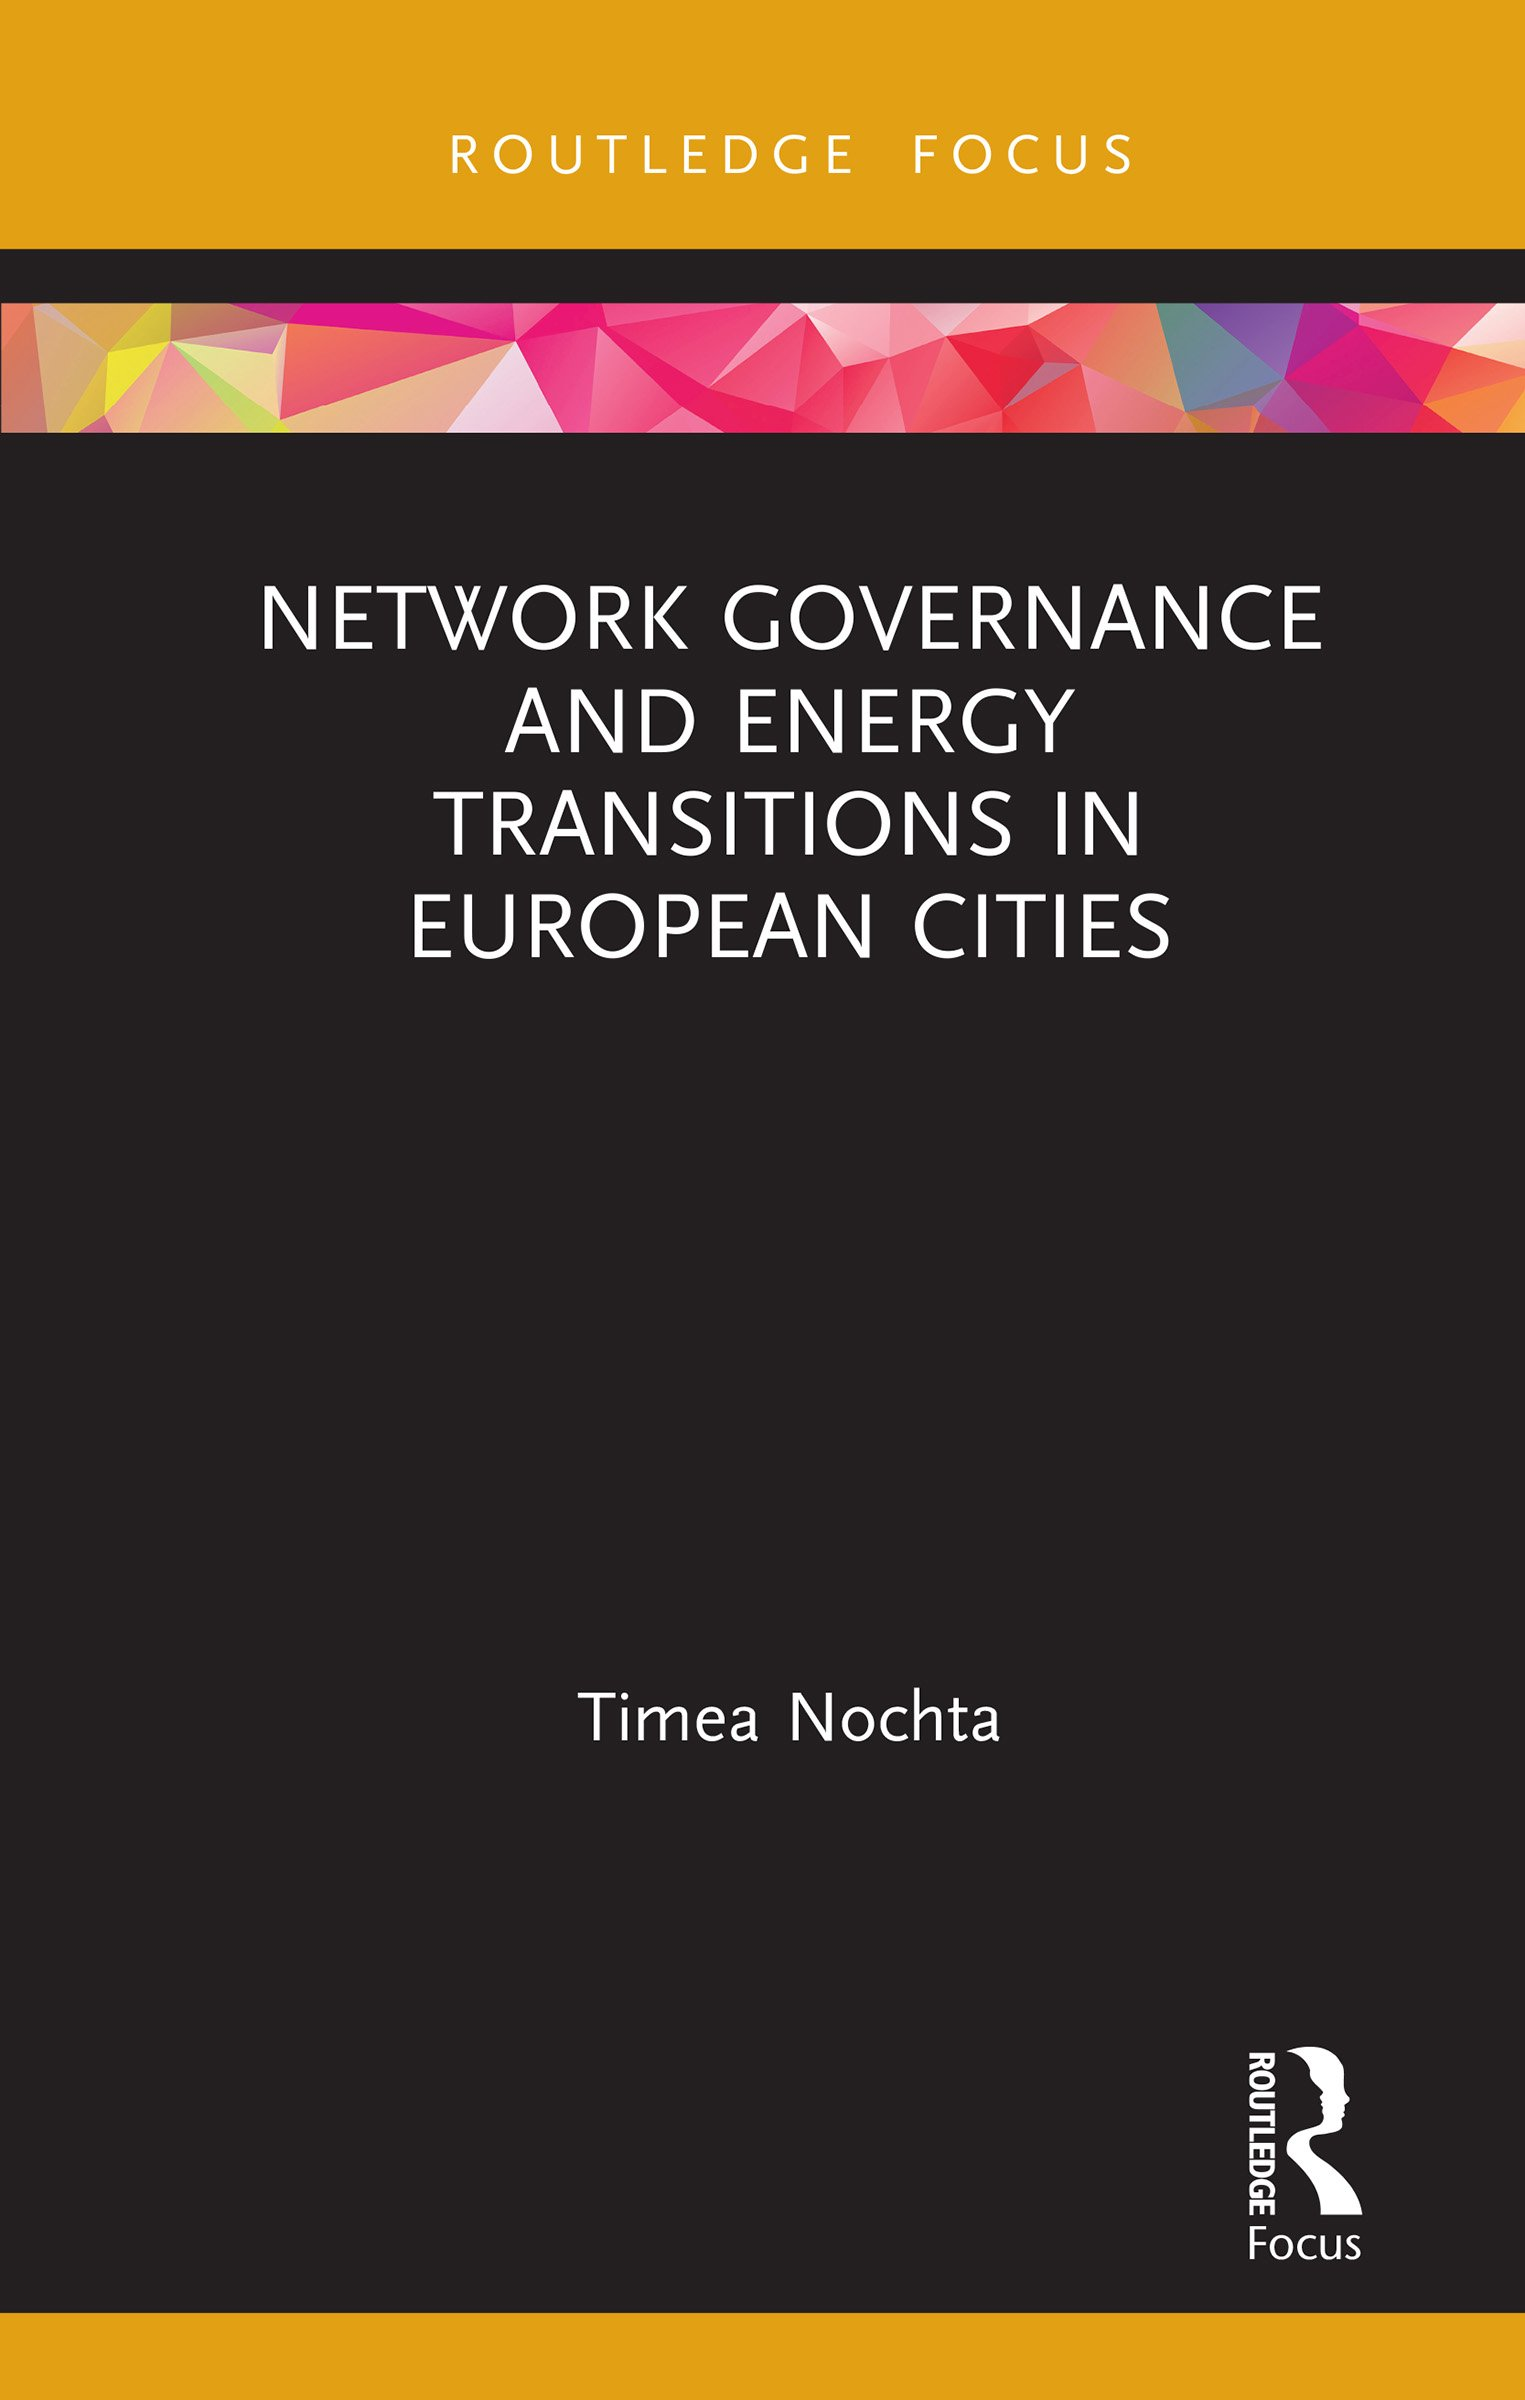 Network Governance and Energy Transitions in European Cities